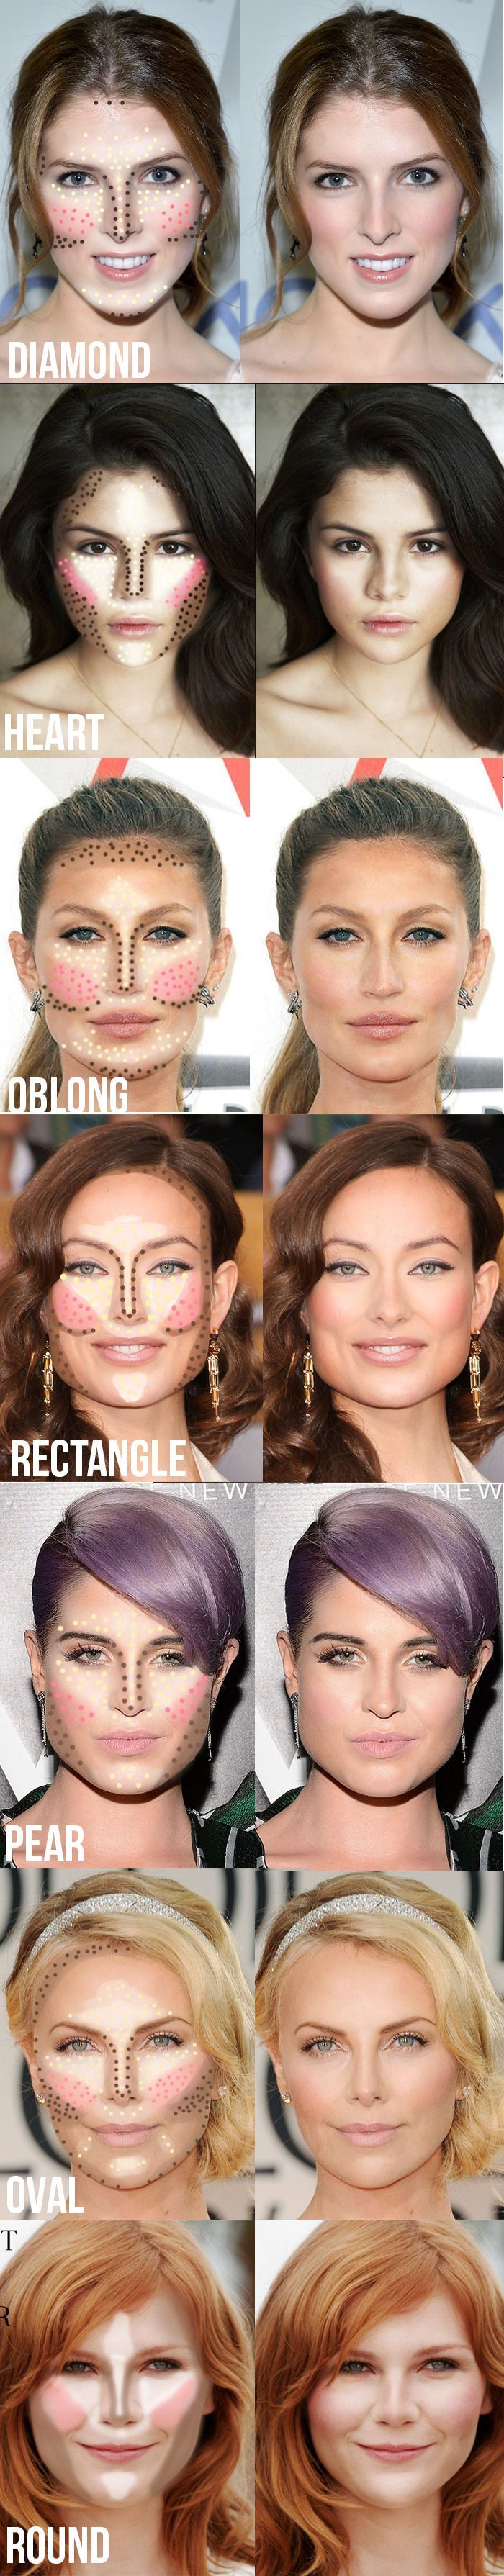 Highlighting and contouring guide for your face shape! It really makes a difference! heart shaped